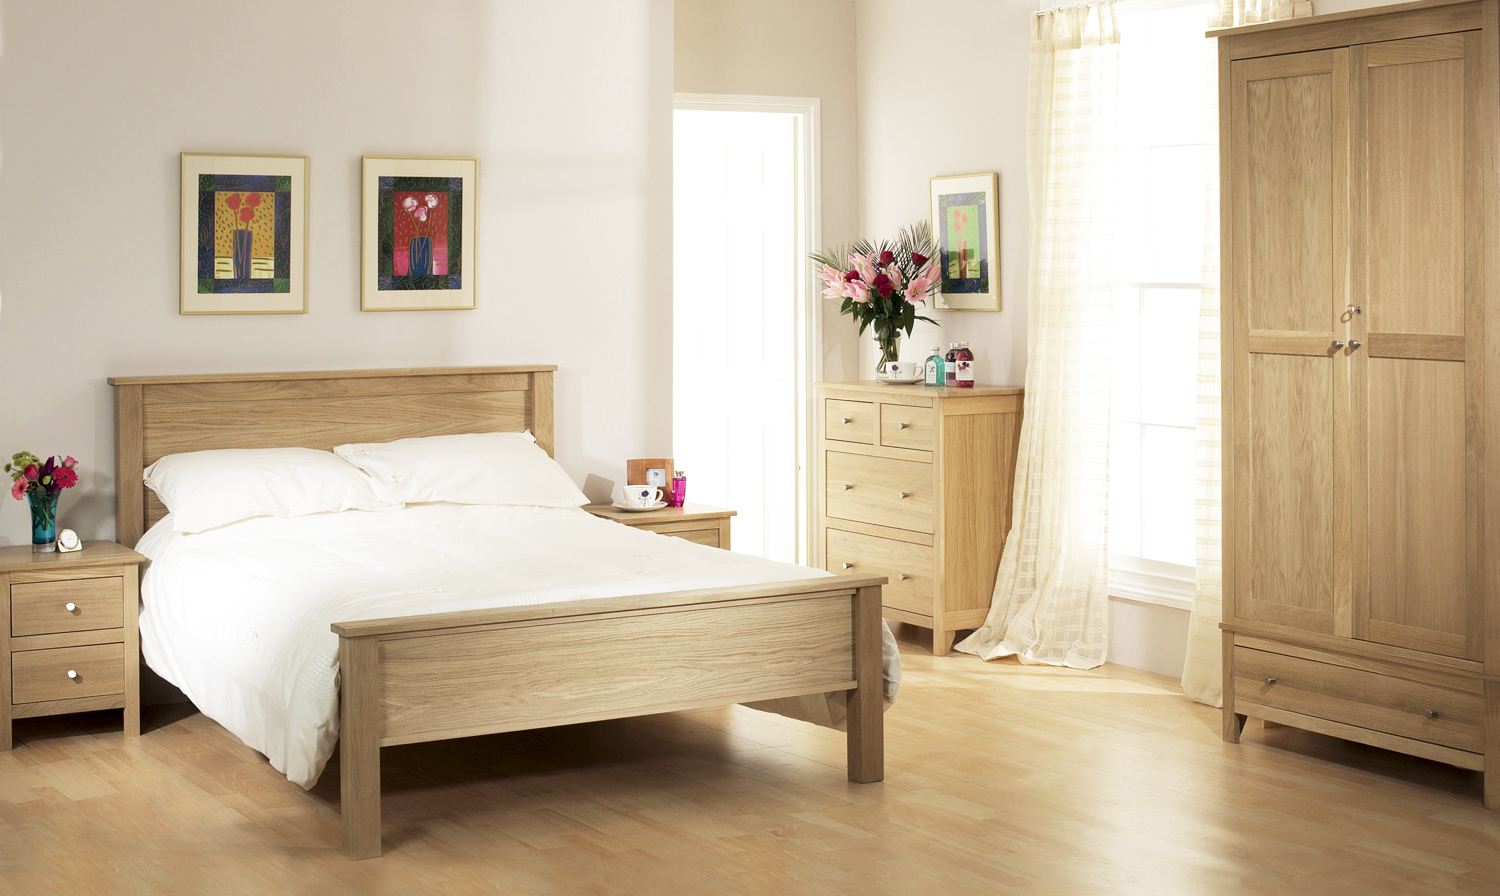 the-best-wooden-furniture-material-beautiful-oak-furniture-bedroom-pictures-with-unfinished-wood-furniture-sets-teak-furniture-design